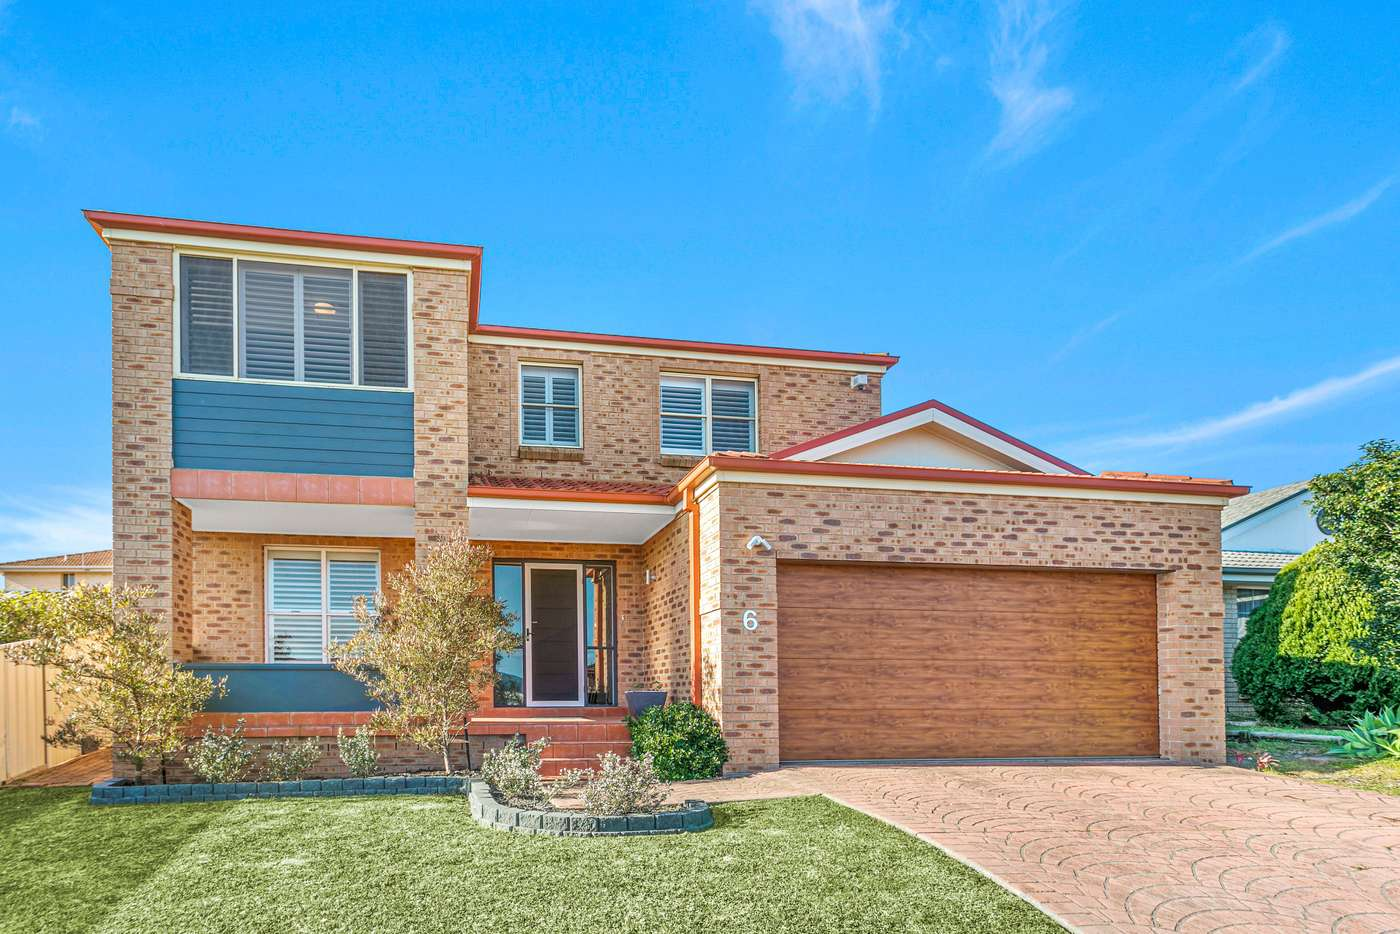 Main view of Homely house listing, 6 Gore Avenue, Shell Cove NSW 2529